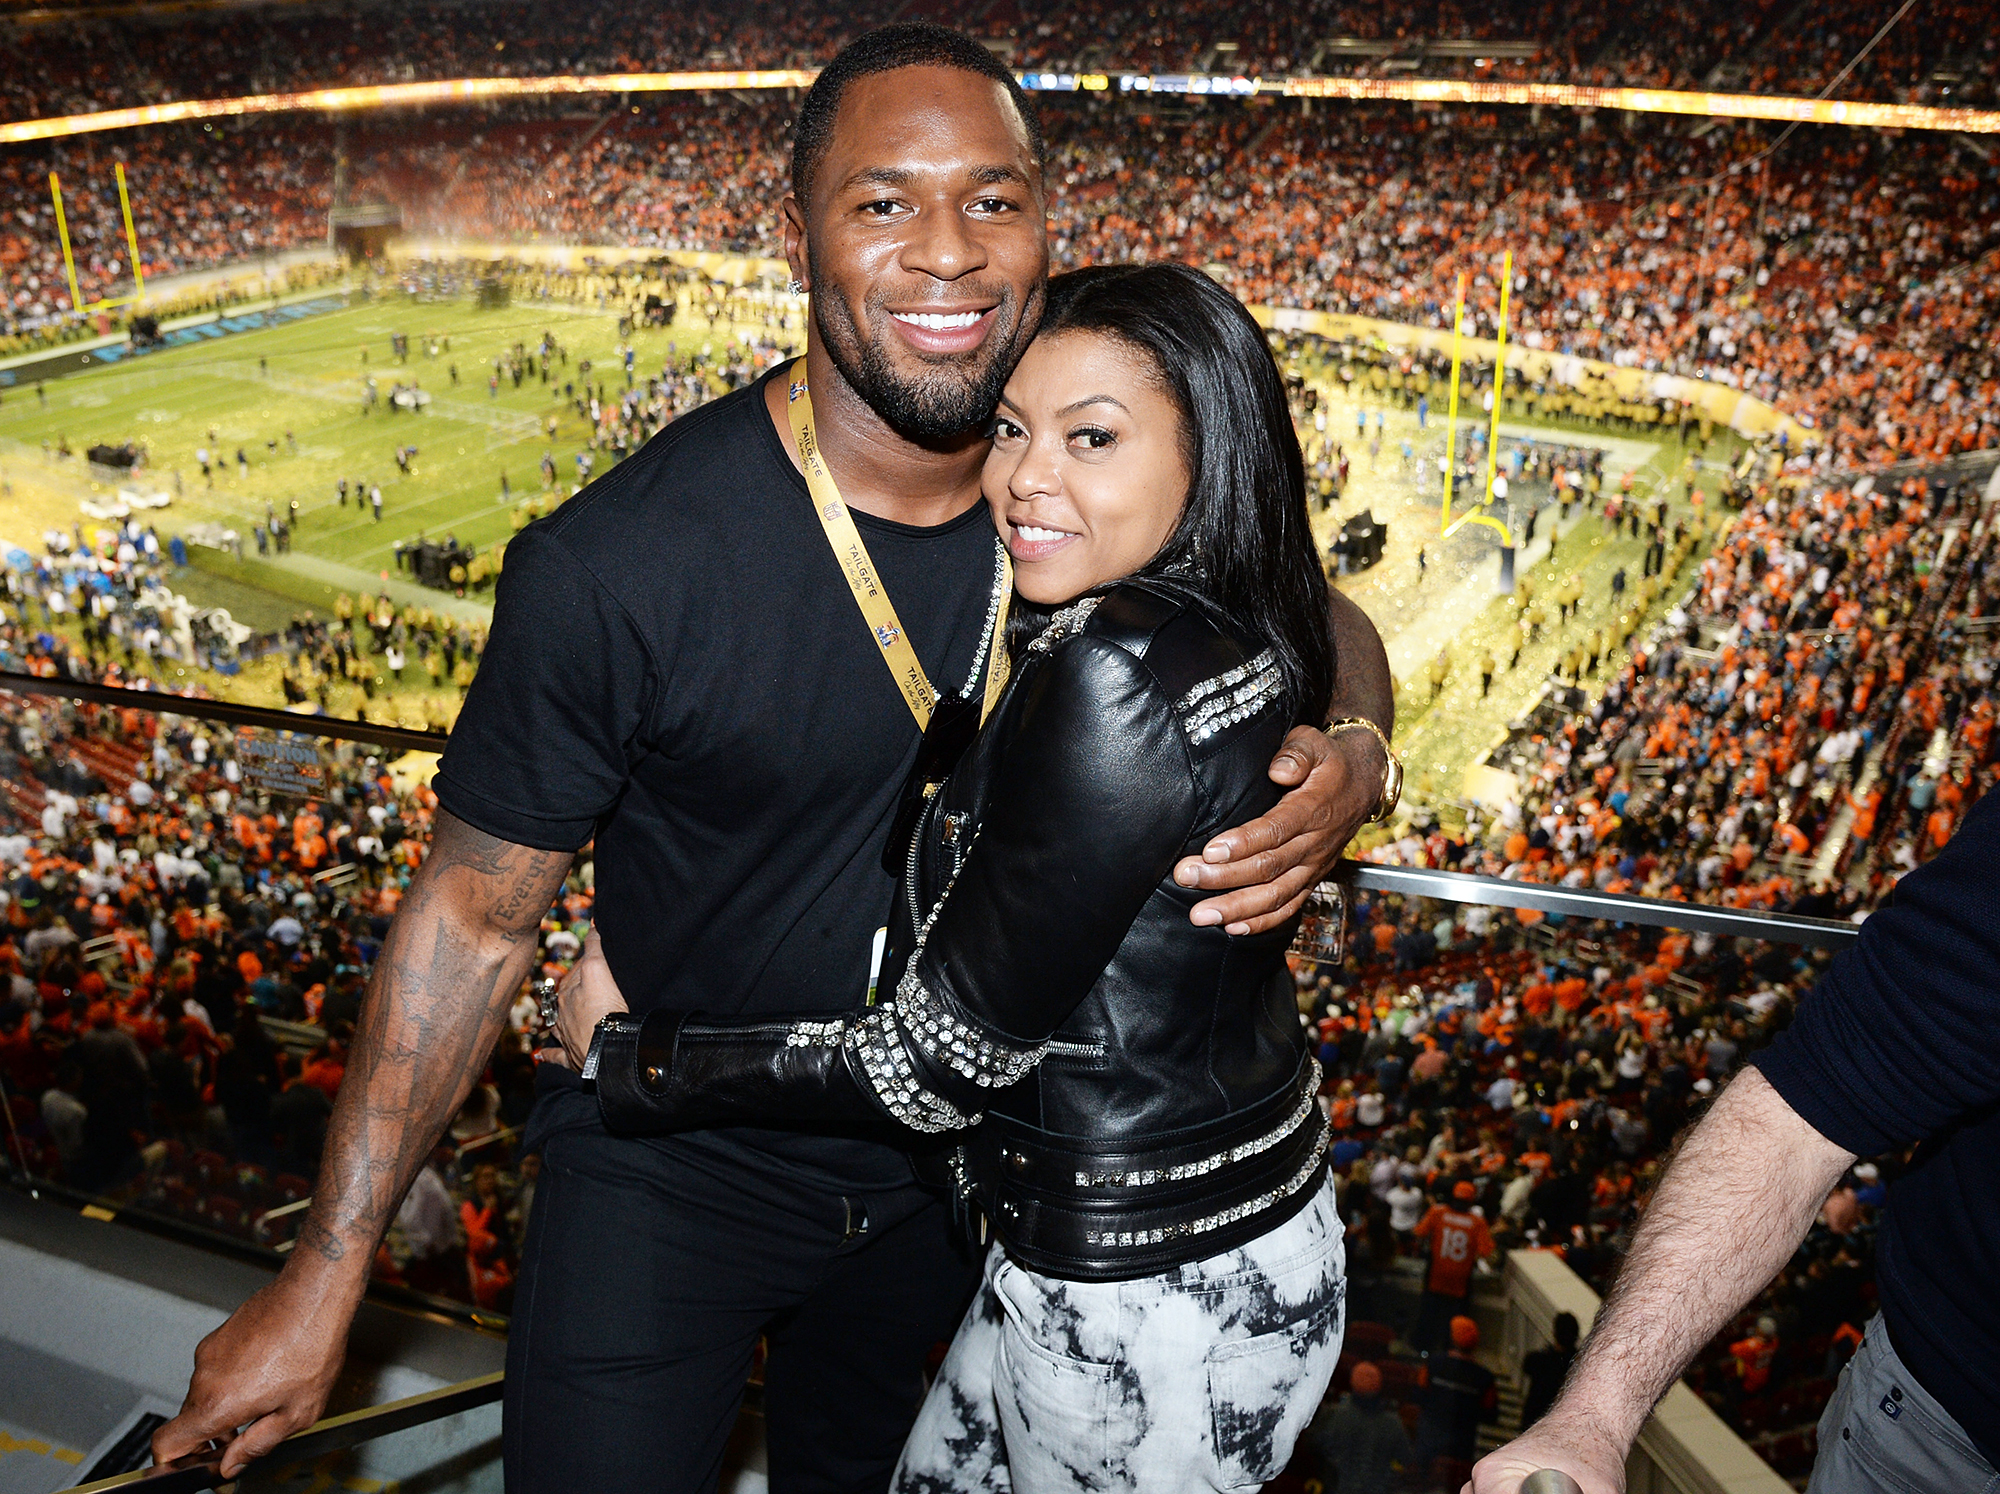 Taraji P. Henson engaged to former National Football League pro Kelvin Hayden